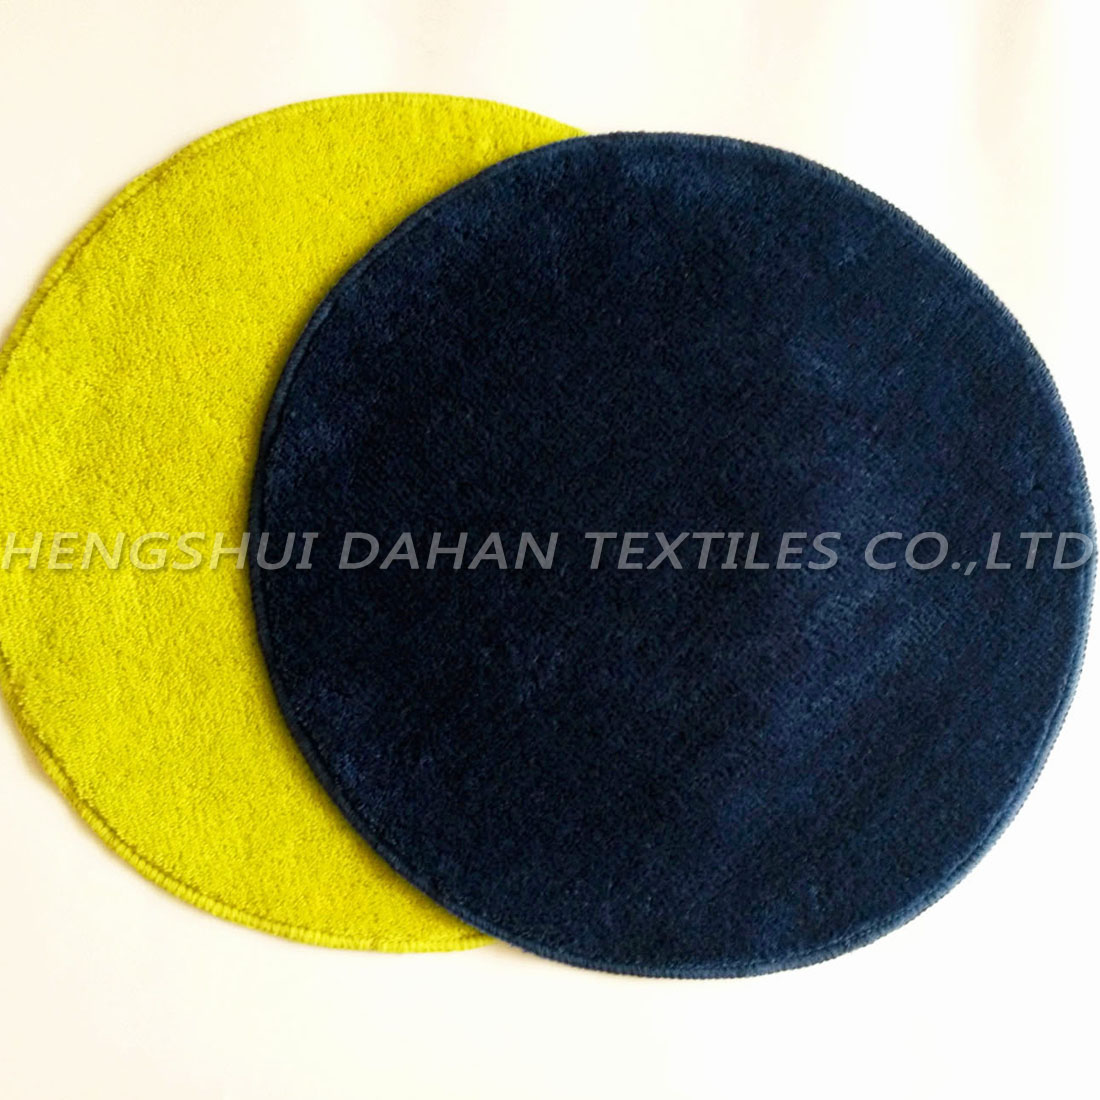 Plain colour ground mat-roundness. FC-201